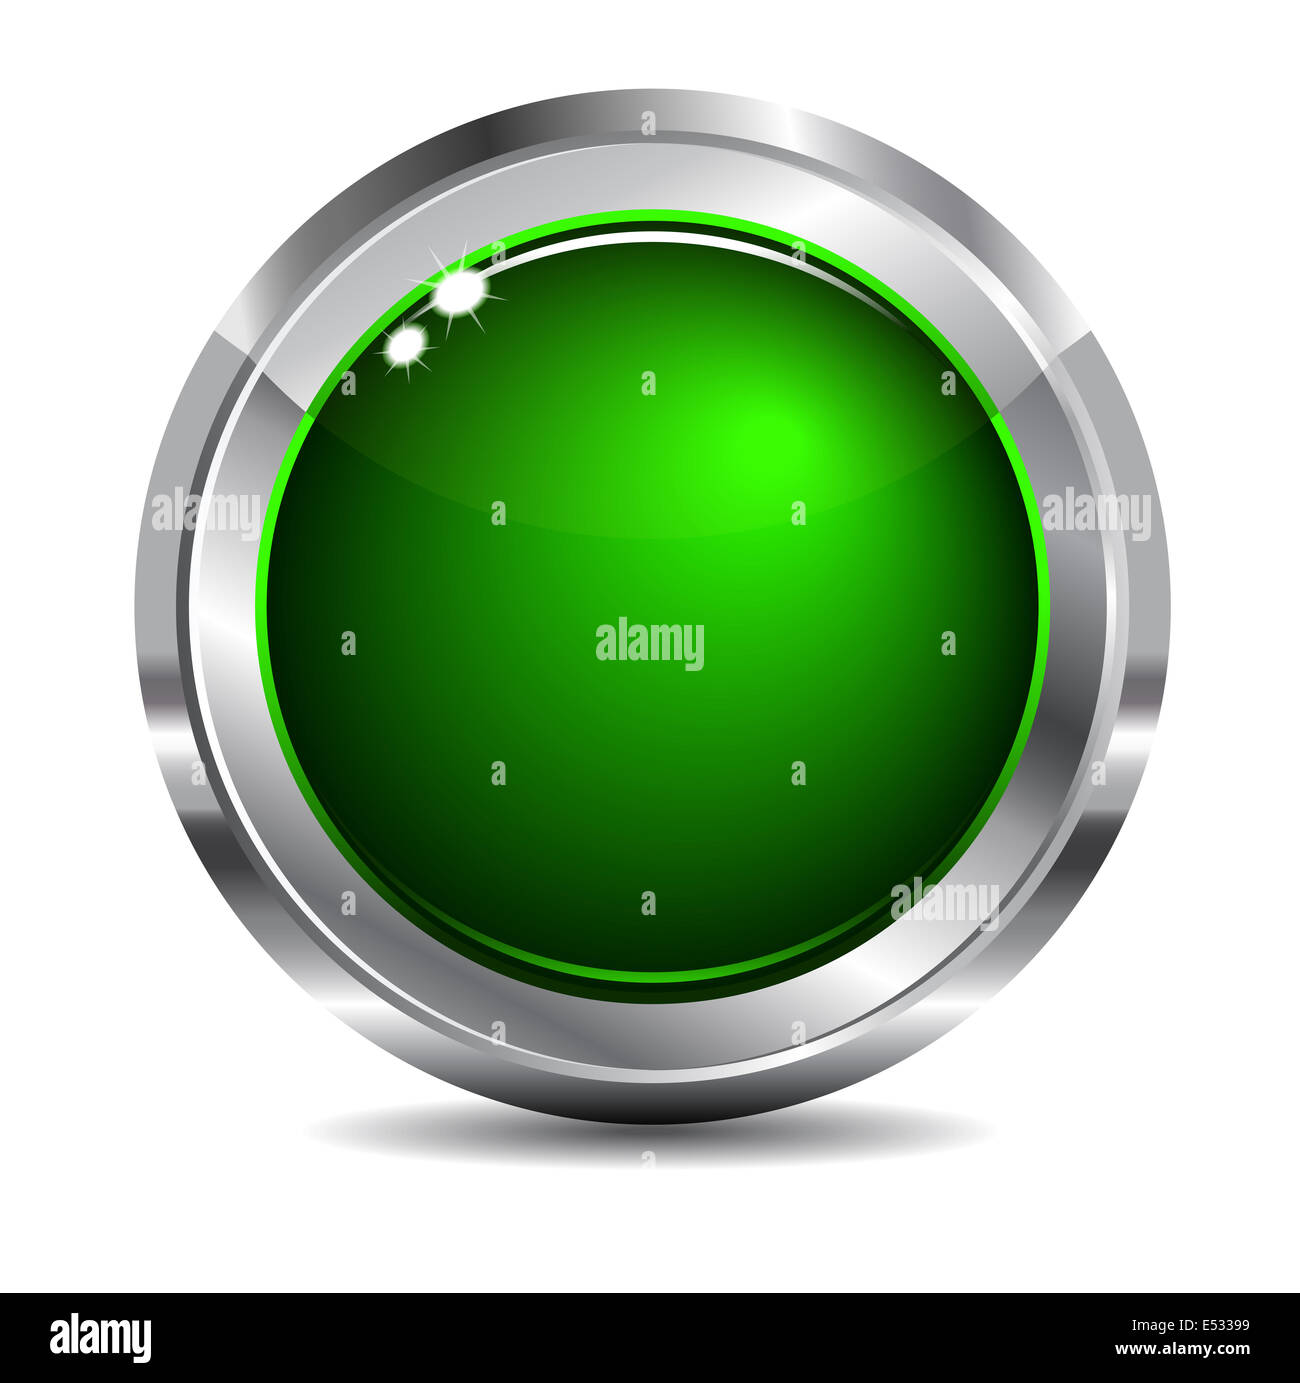 Blank Green Web Site and App Navigation Button - Stock Image